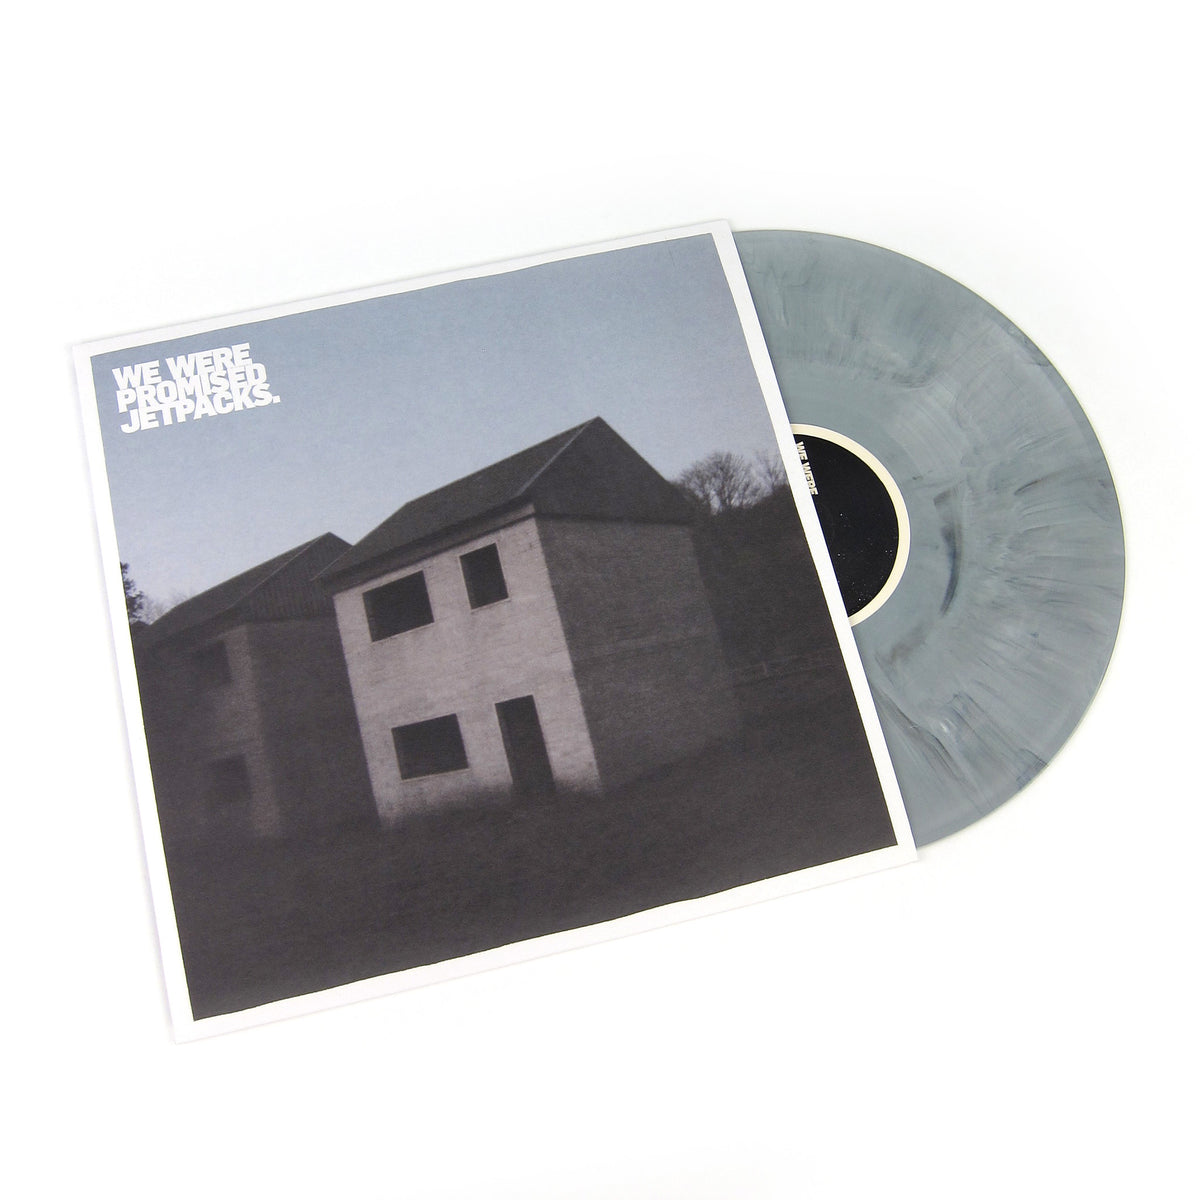 We Were Promised Jetpacks: These Four Walls (Colored Vinyl) Vinyl LP